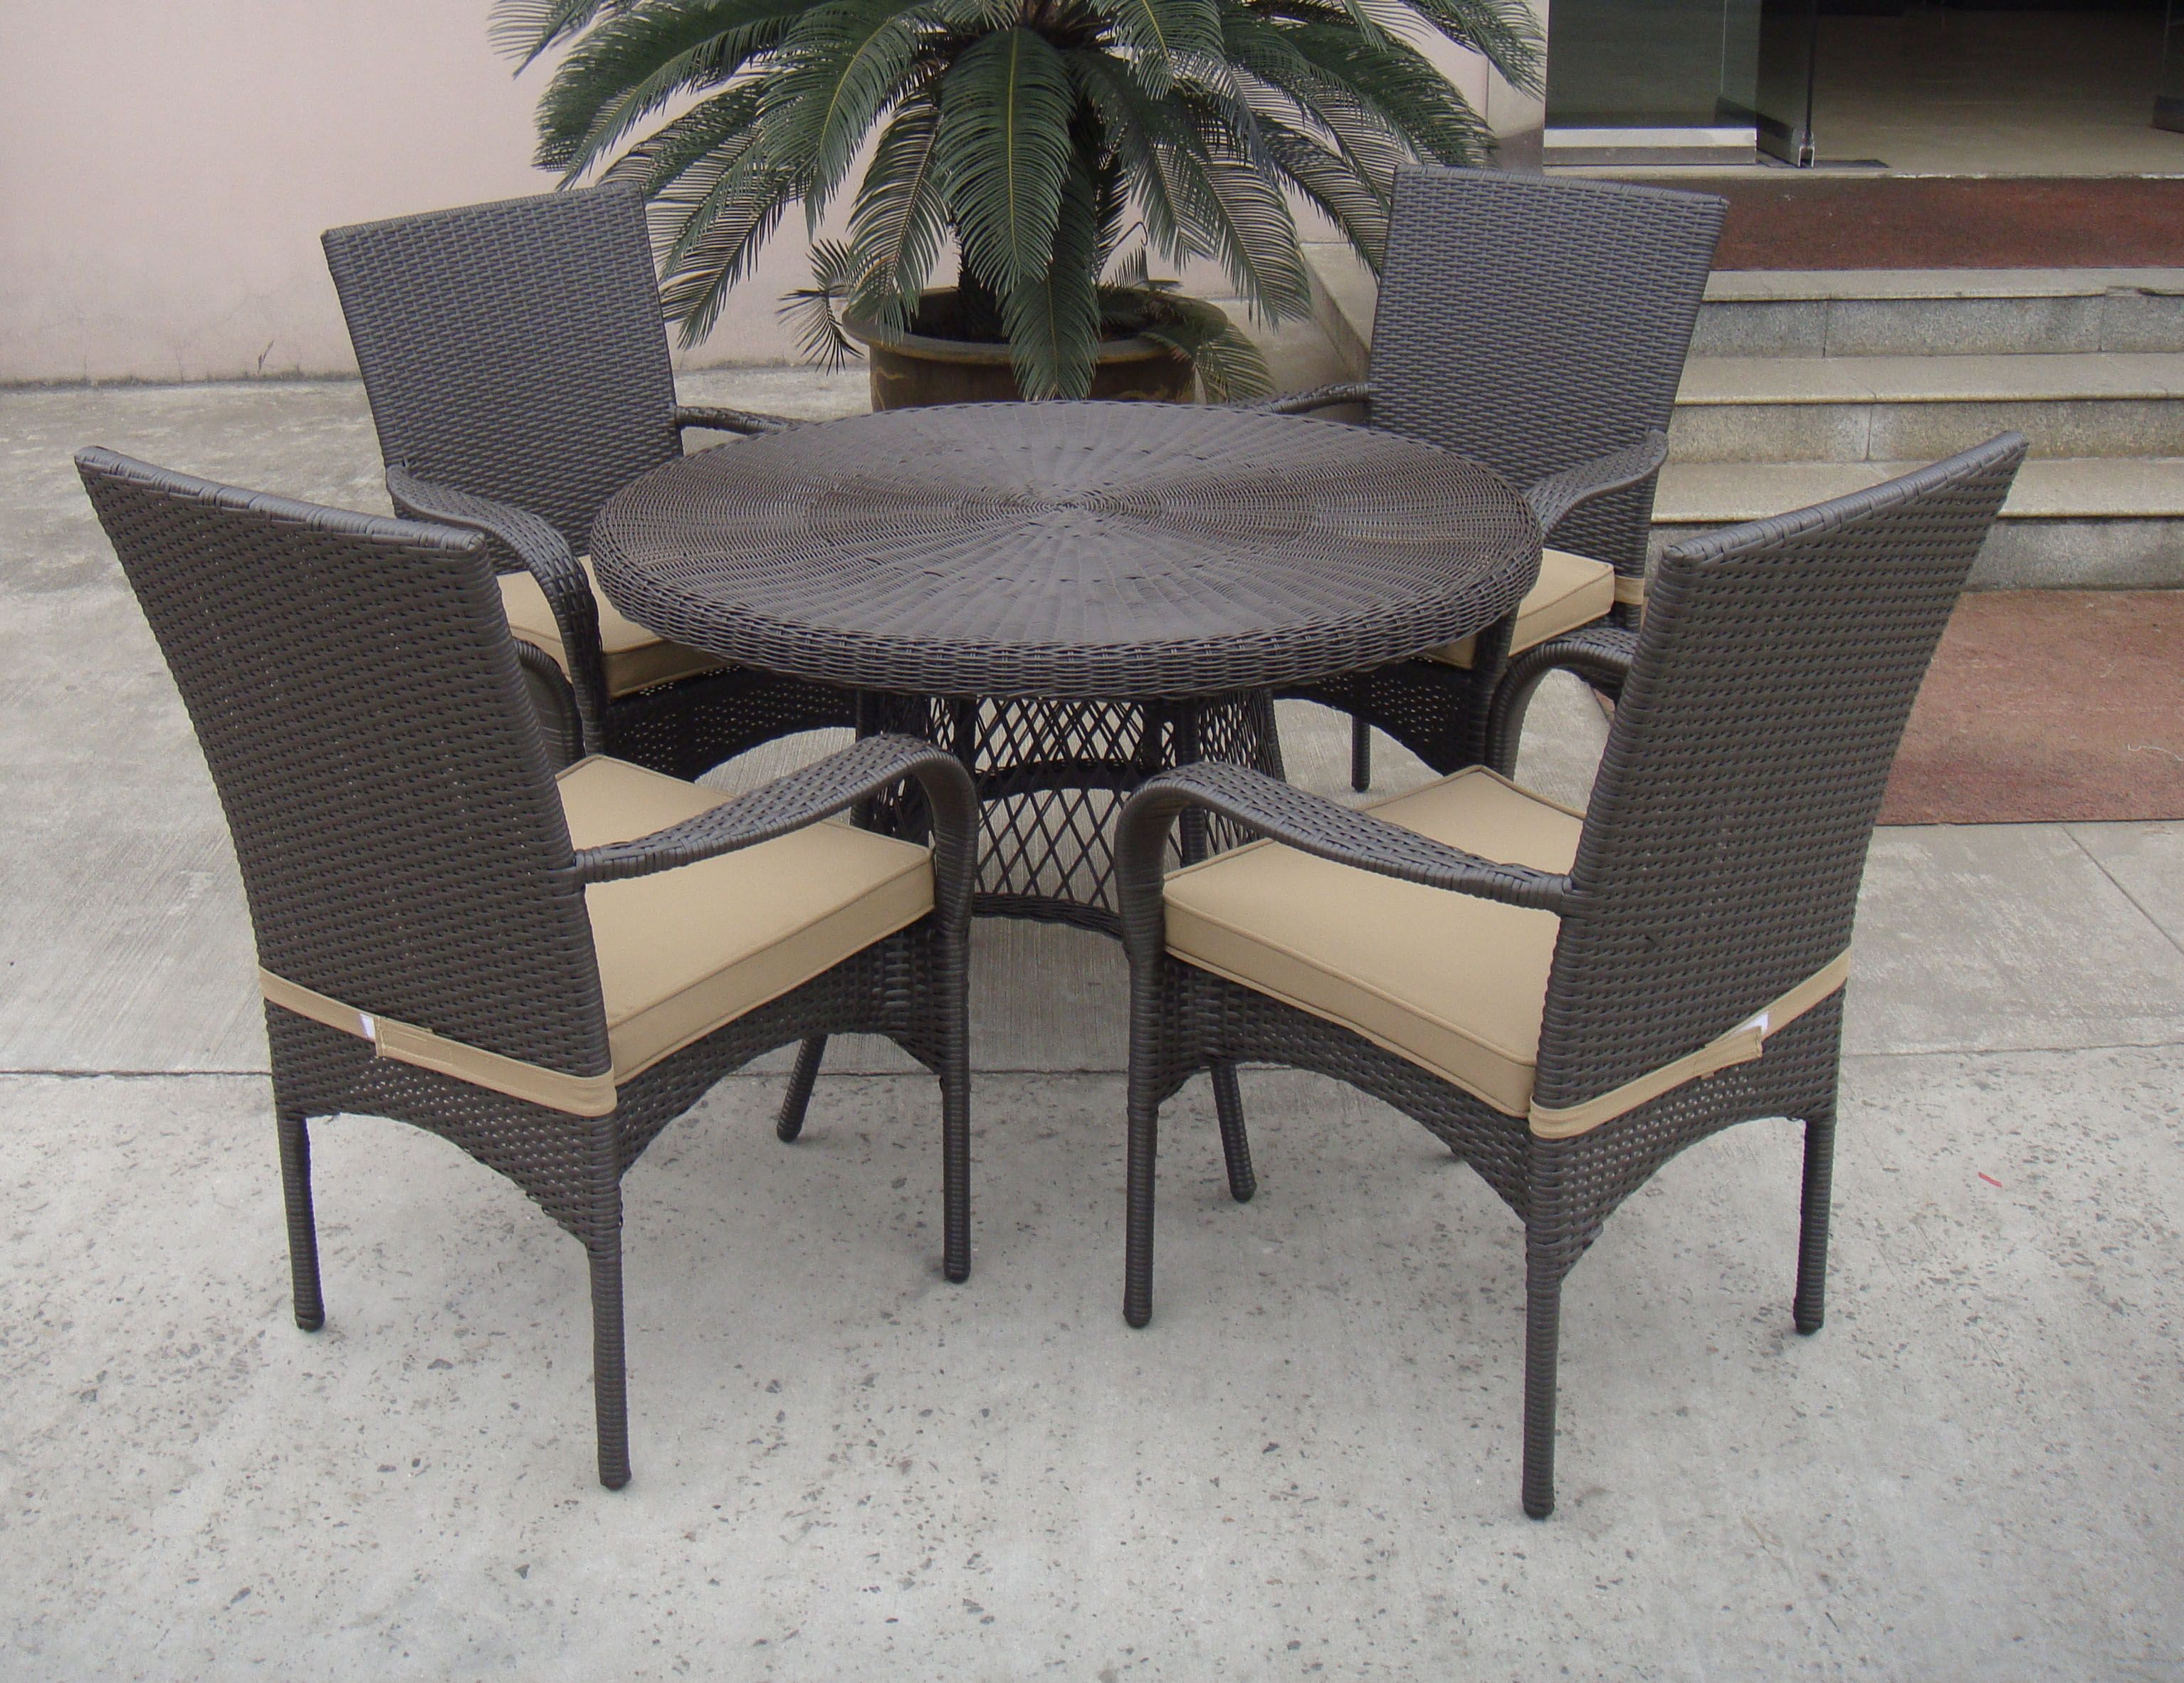 tg 9416 outdoor patio wicker rattan coffee table and chair from